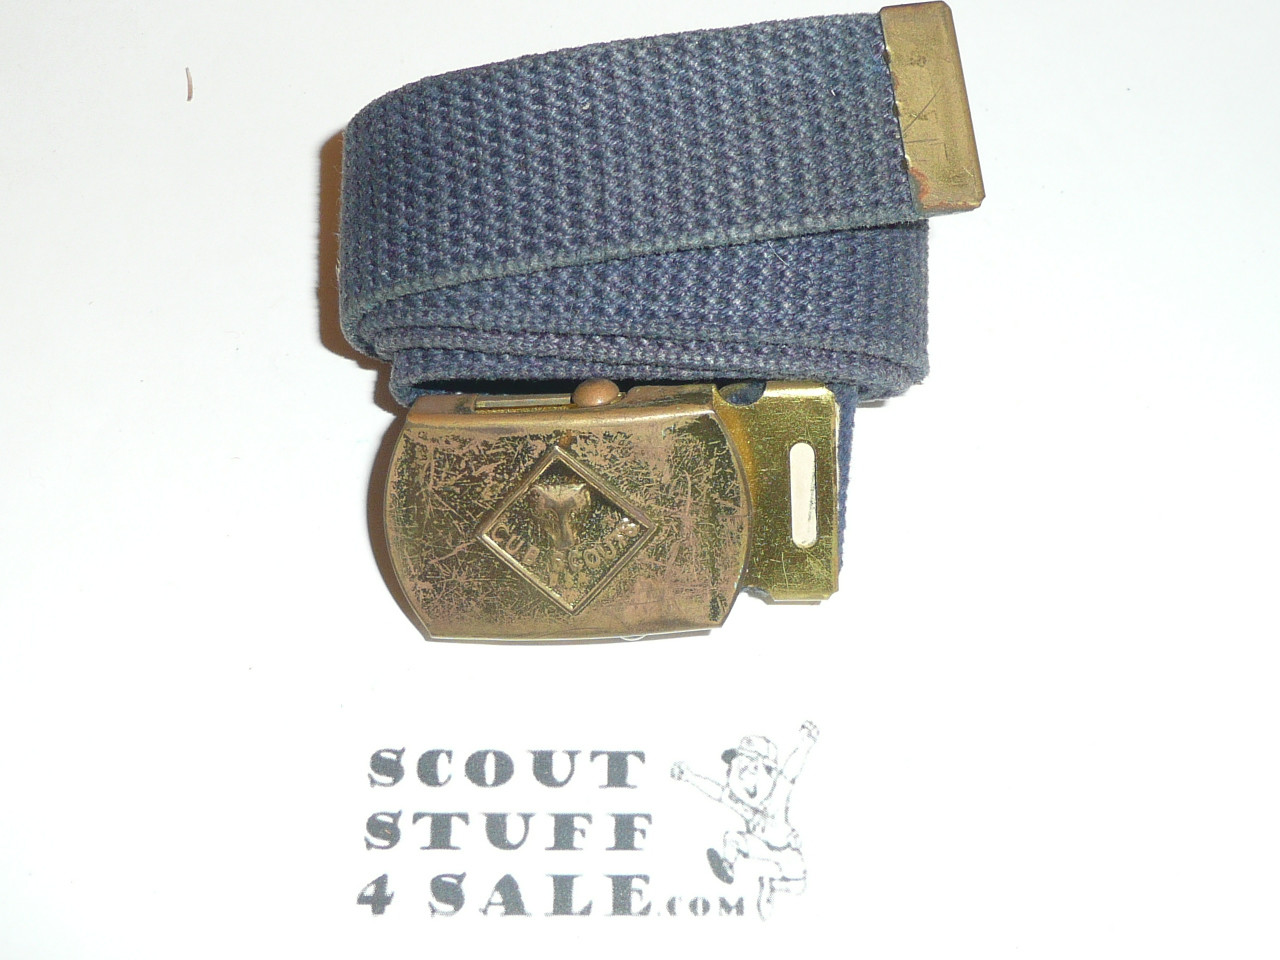 1960's Cub Scout Brass Friction Belt Buckle with webbed belt, used, blue shade of web belt will vary